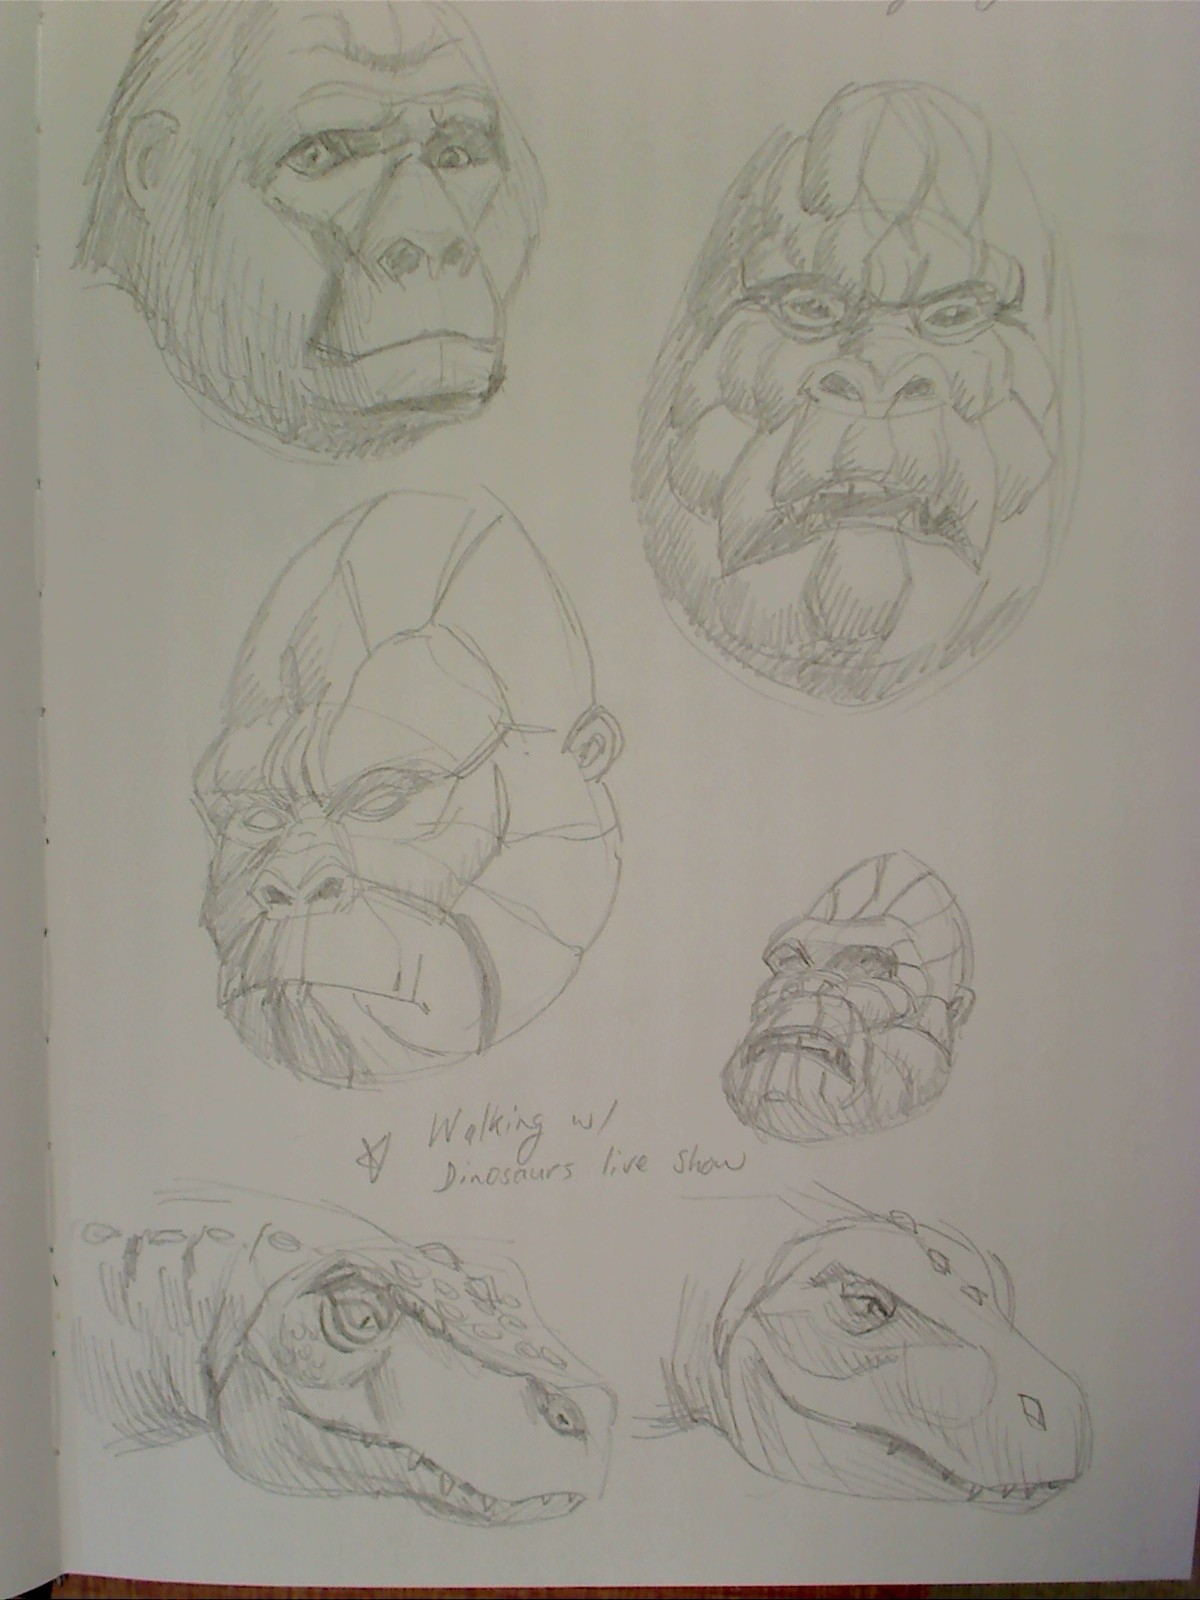 Sketchbook studies of King Kong